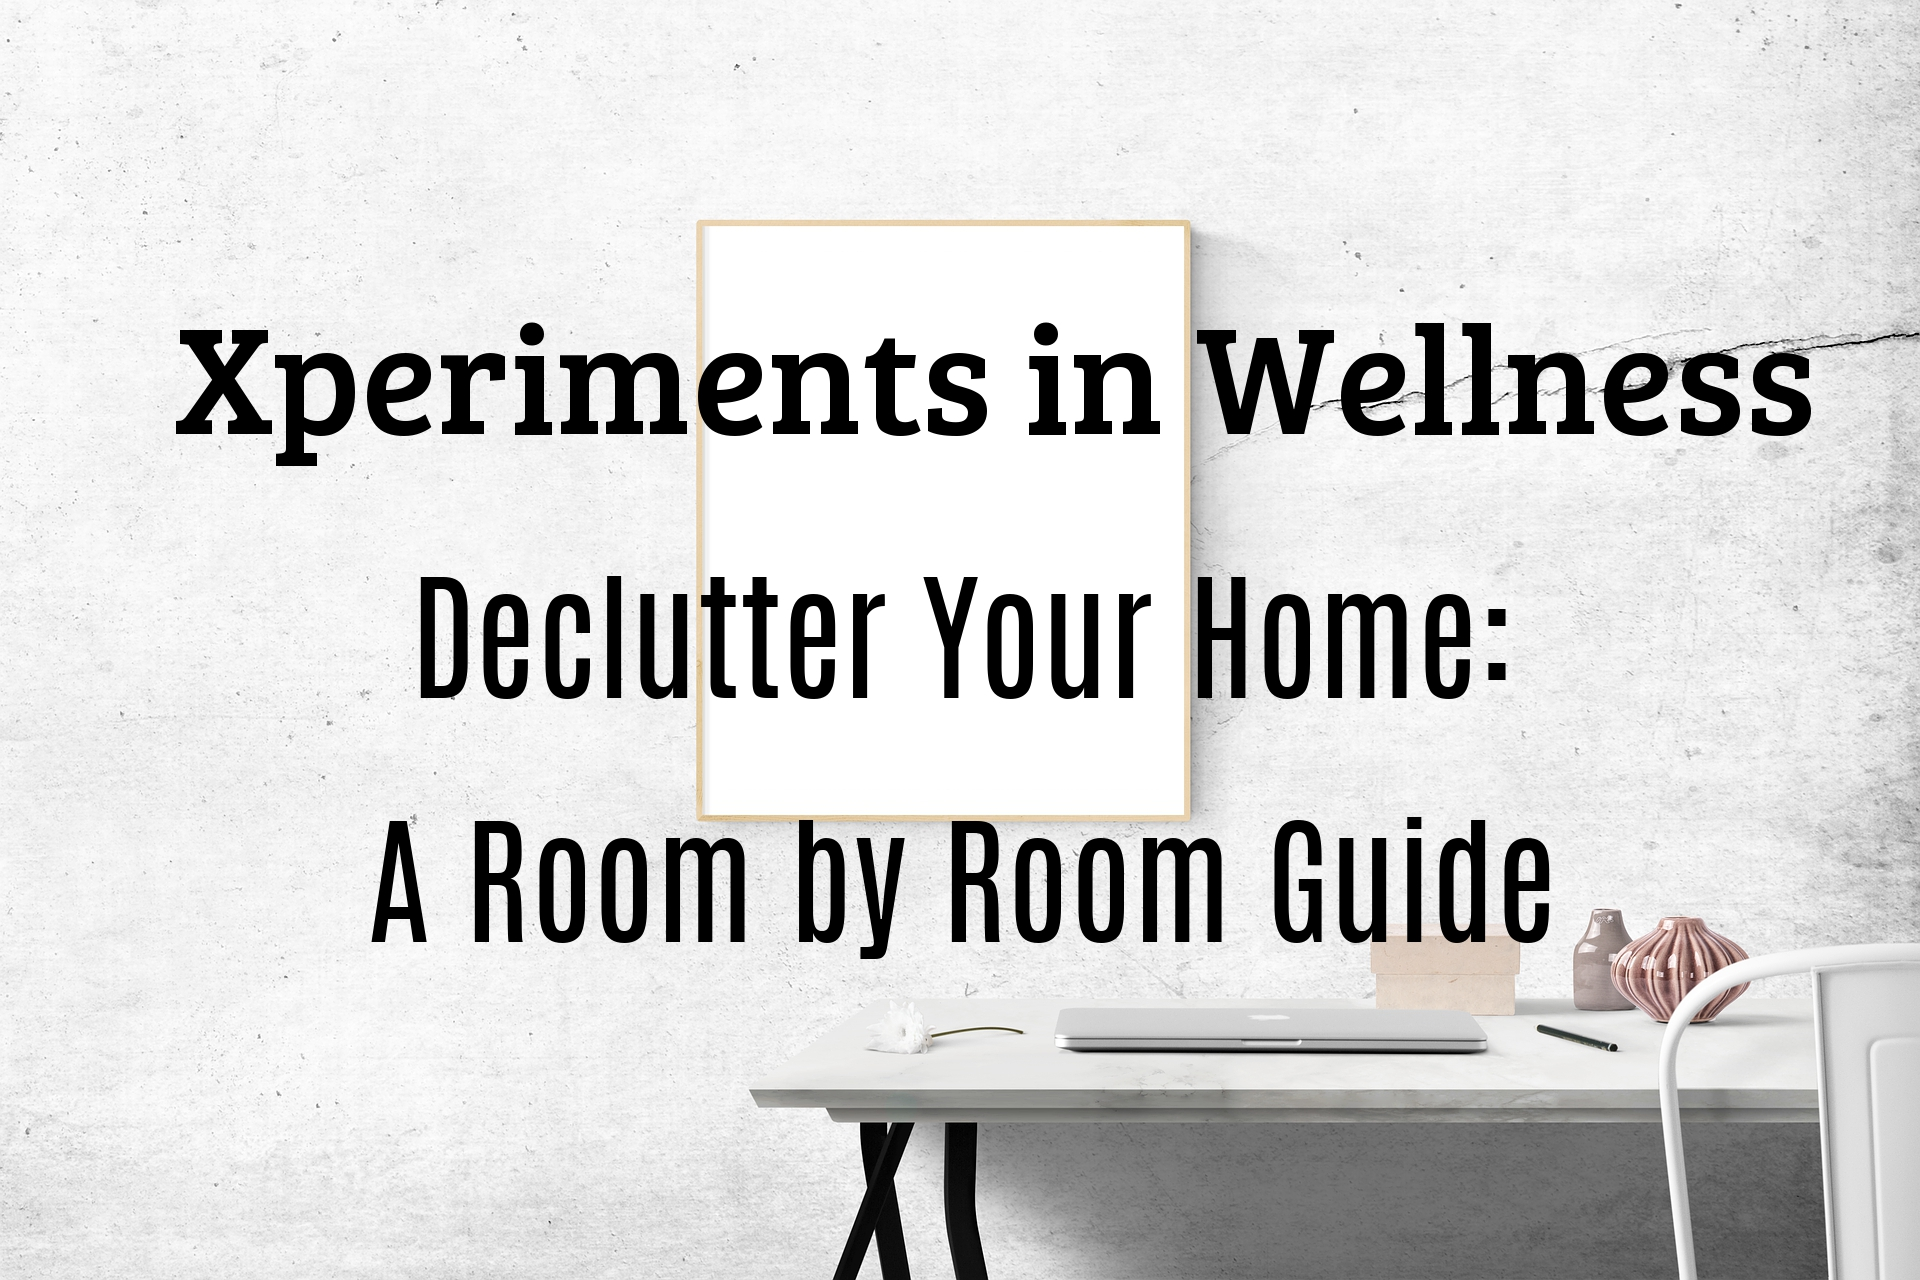 Declutter your home | An Easy Room by Room Guide | www.Xperimentsinliving.com